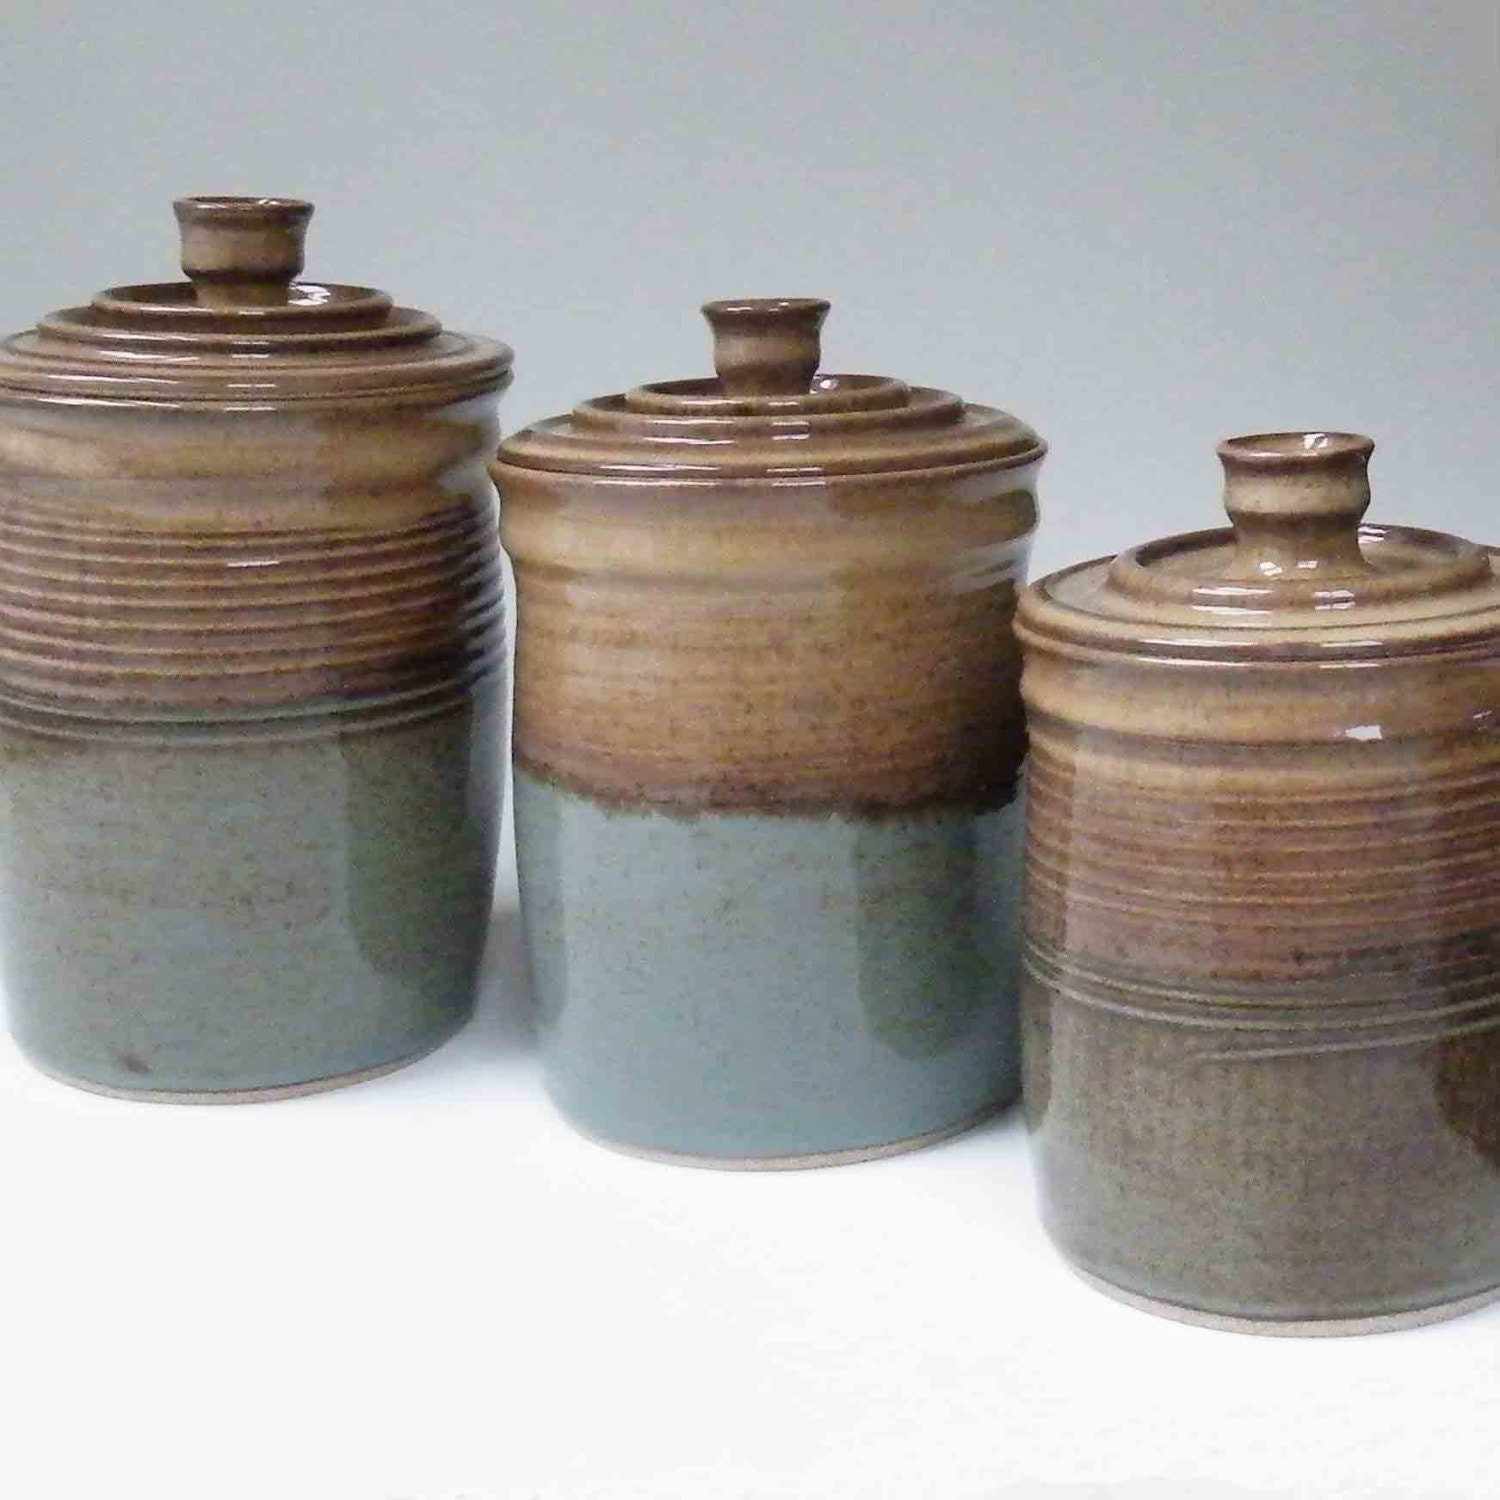 made to order kitchen set of 3 canisters brown with blue